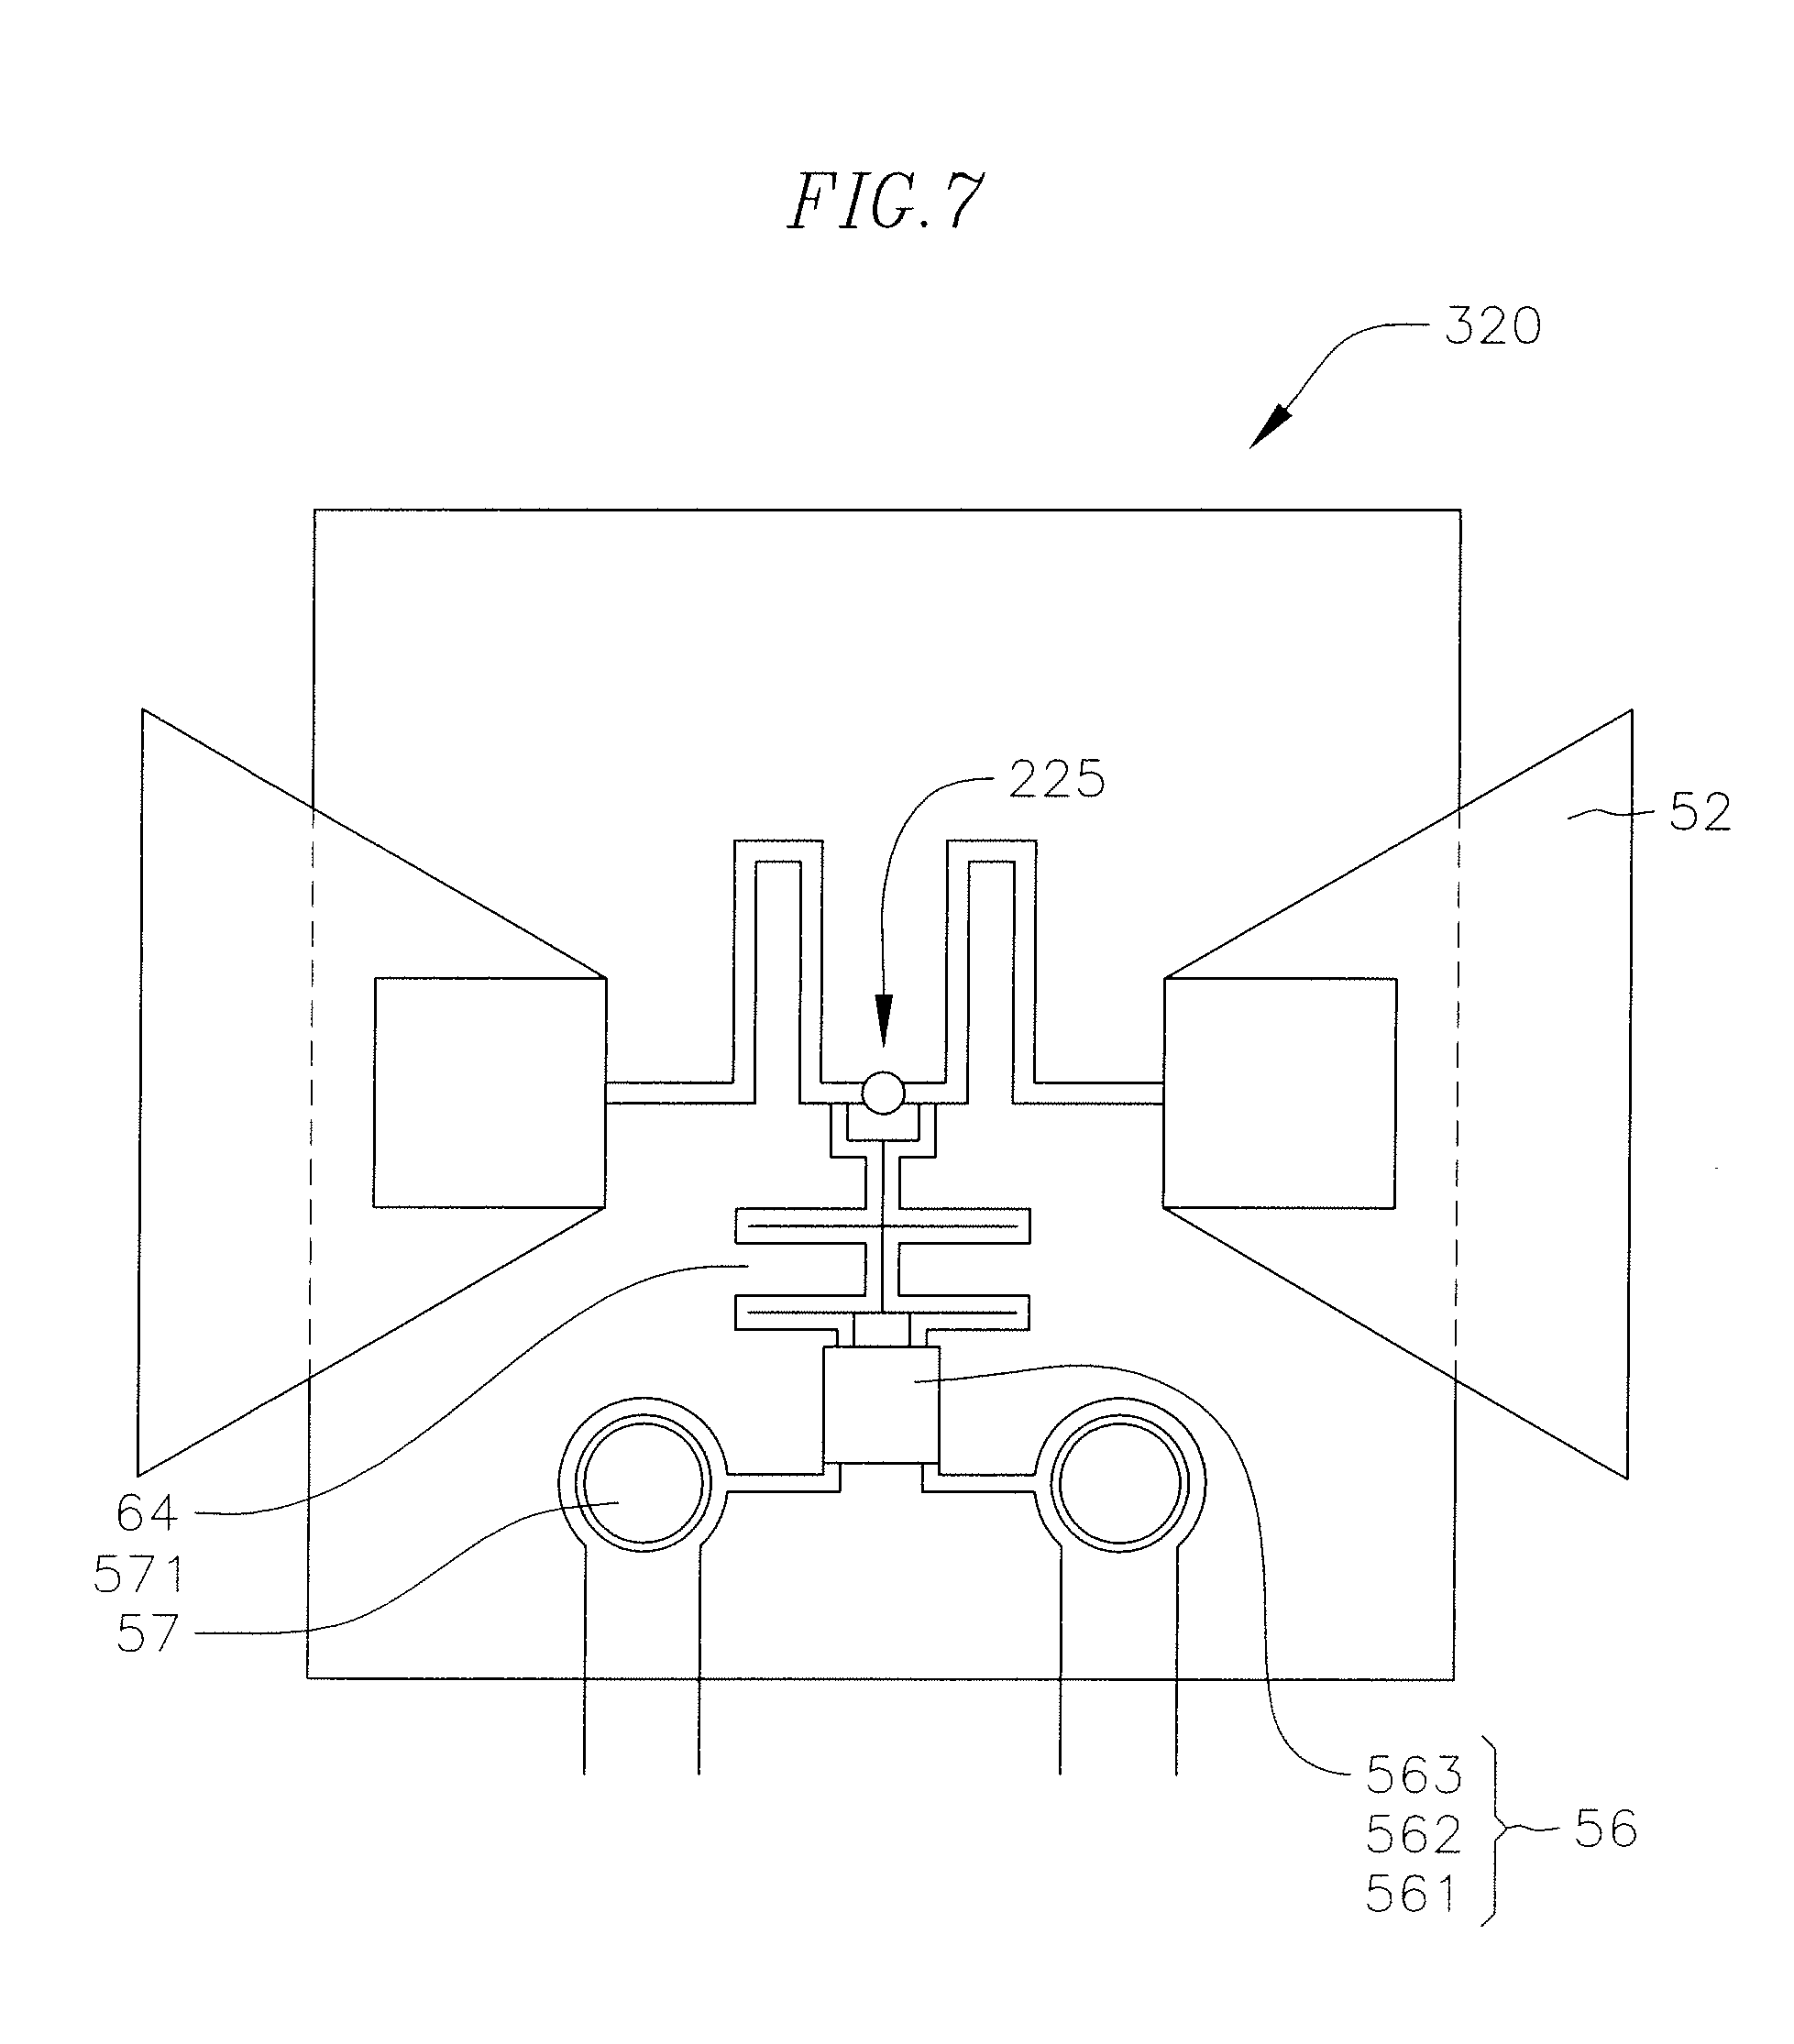 patent us7795859 - low cost millimeter wave imager